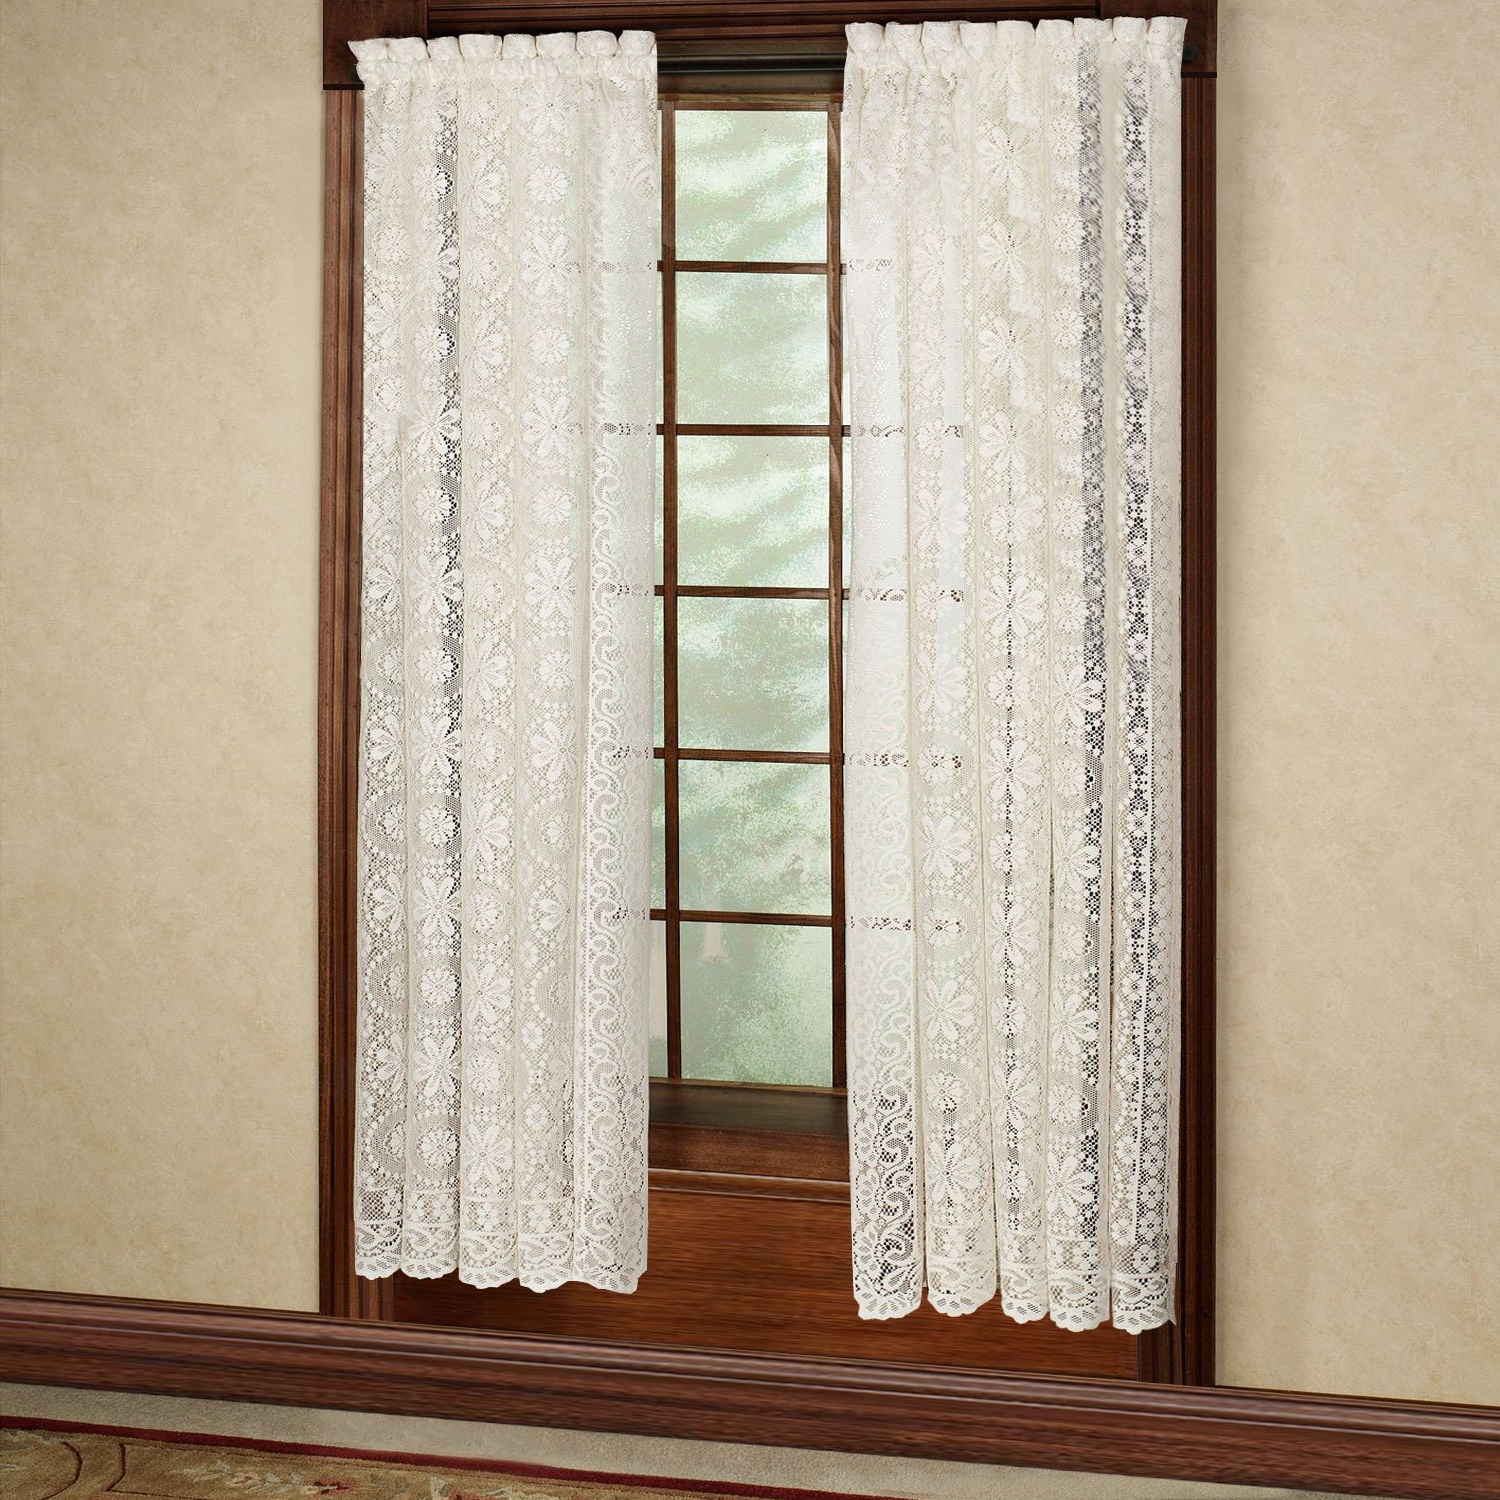 2020 Luxurious Old World Style Lace Window Curtain Panels For Luxurious Old World Style Lace Window Curtain Panel (View 2 of 20)